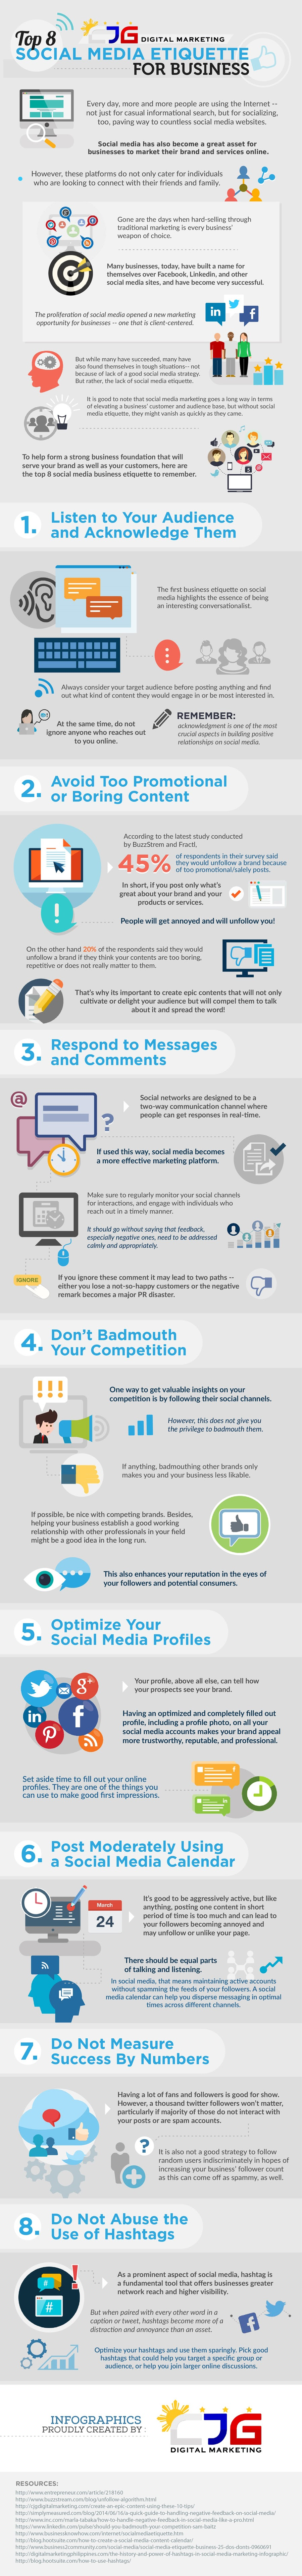 Top 8 Social Media Etiquette for Business - #Infographic